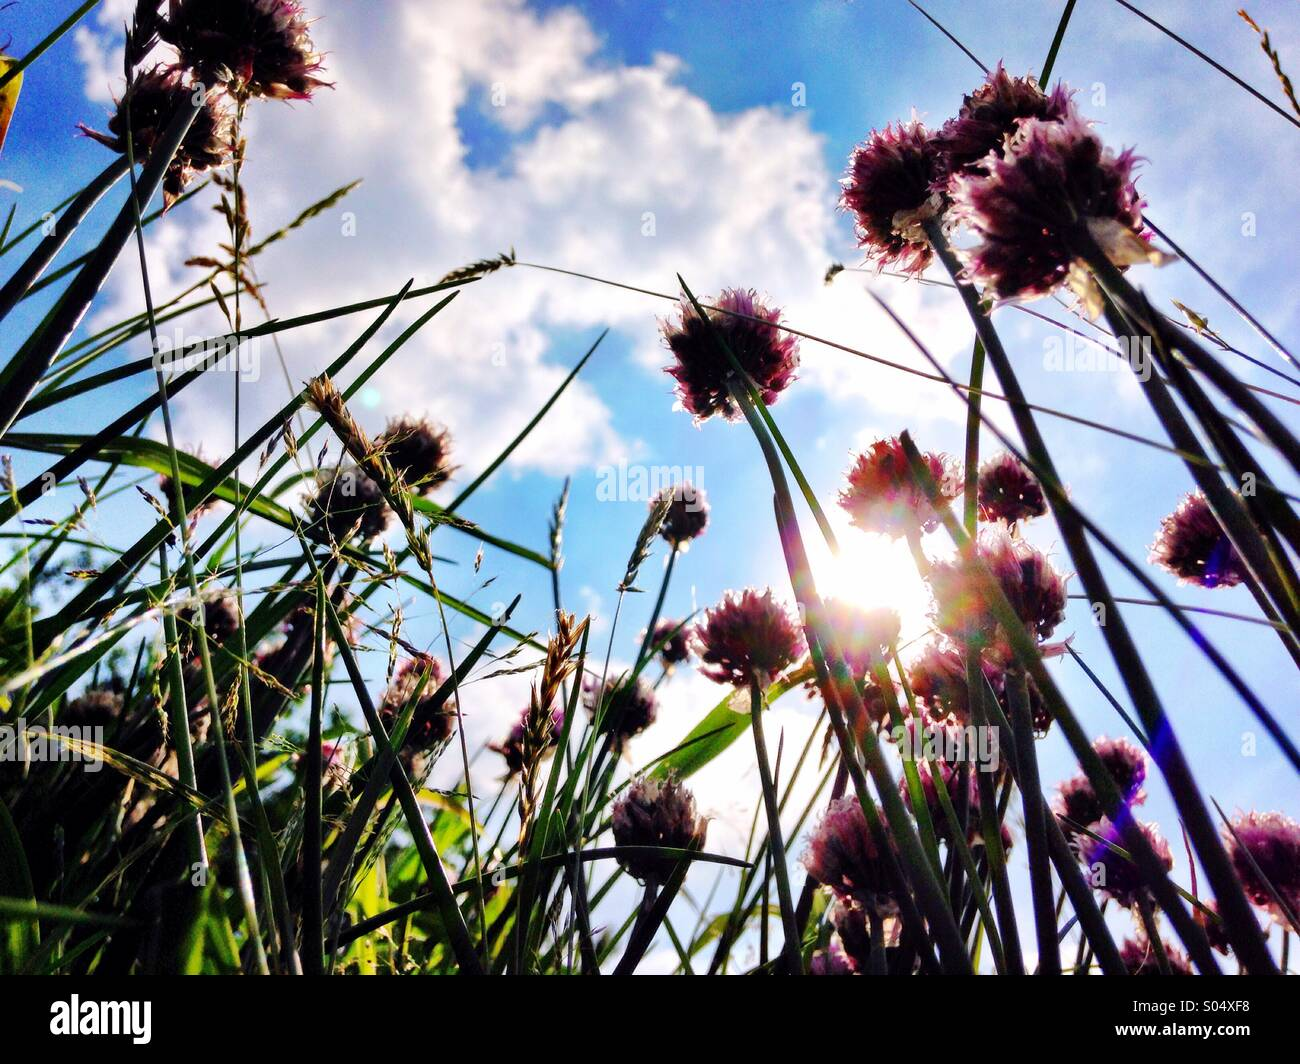 Under the chives. - Stock Image